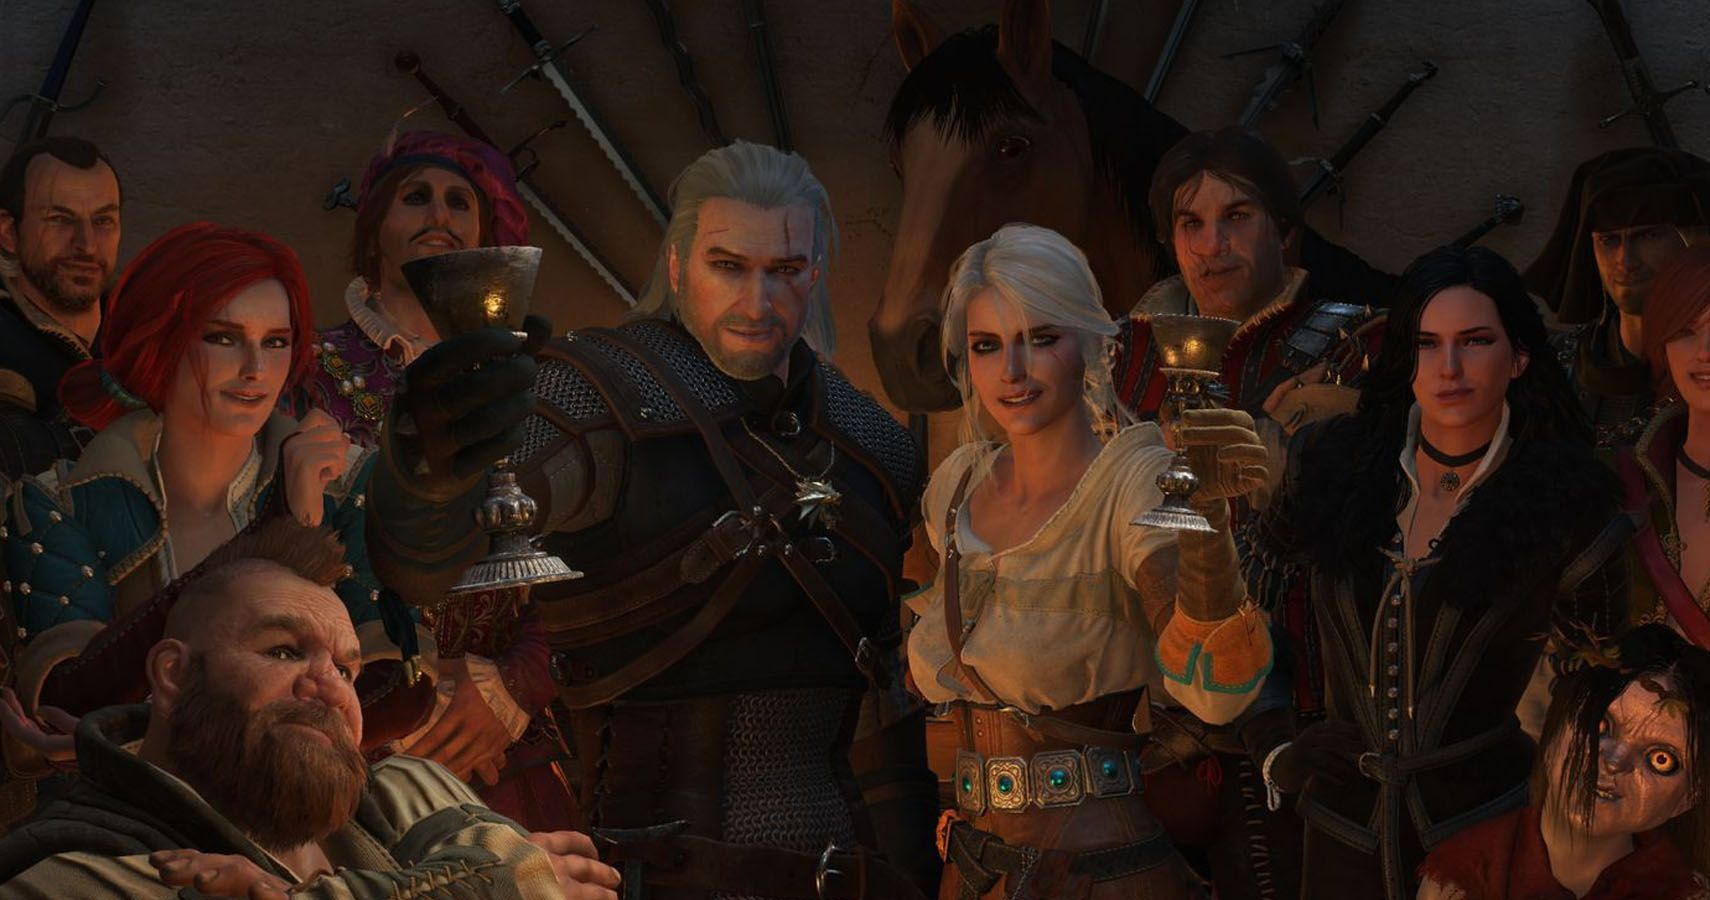 The Witcher 3: 10 Things To Do After You Beat The Game